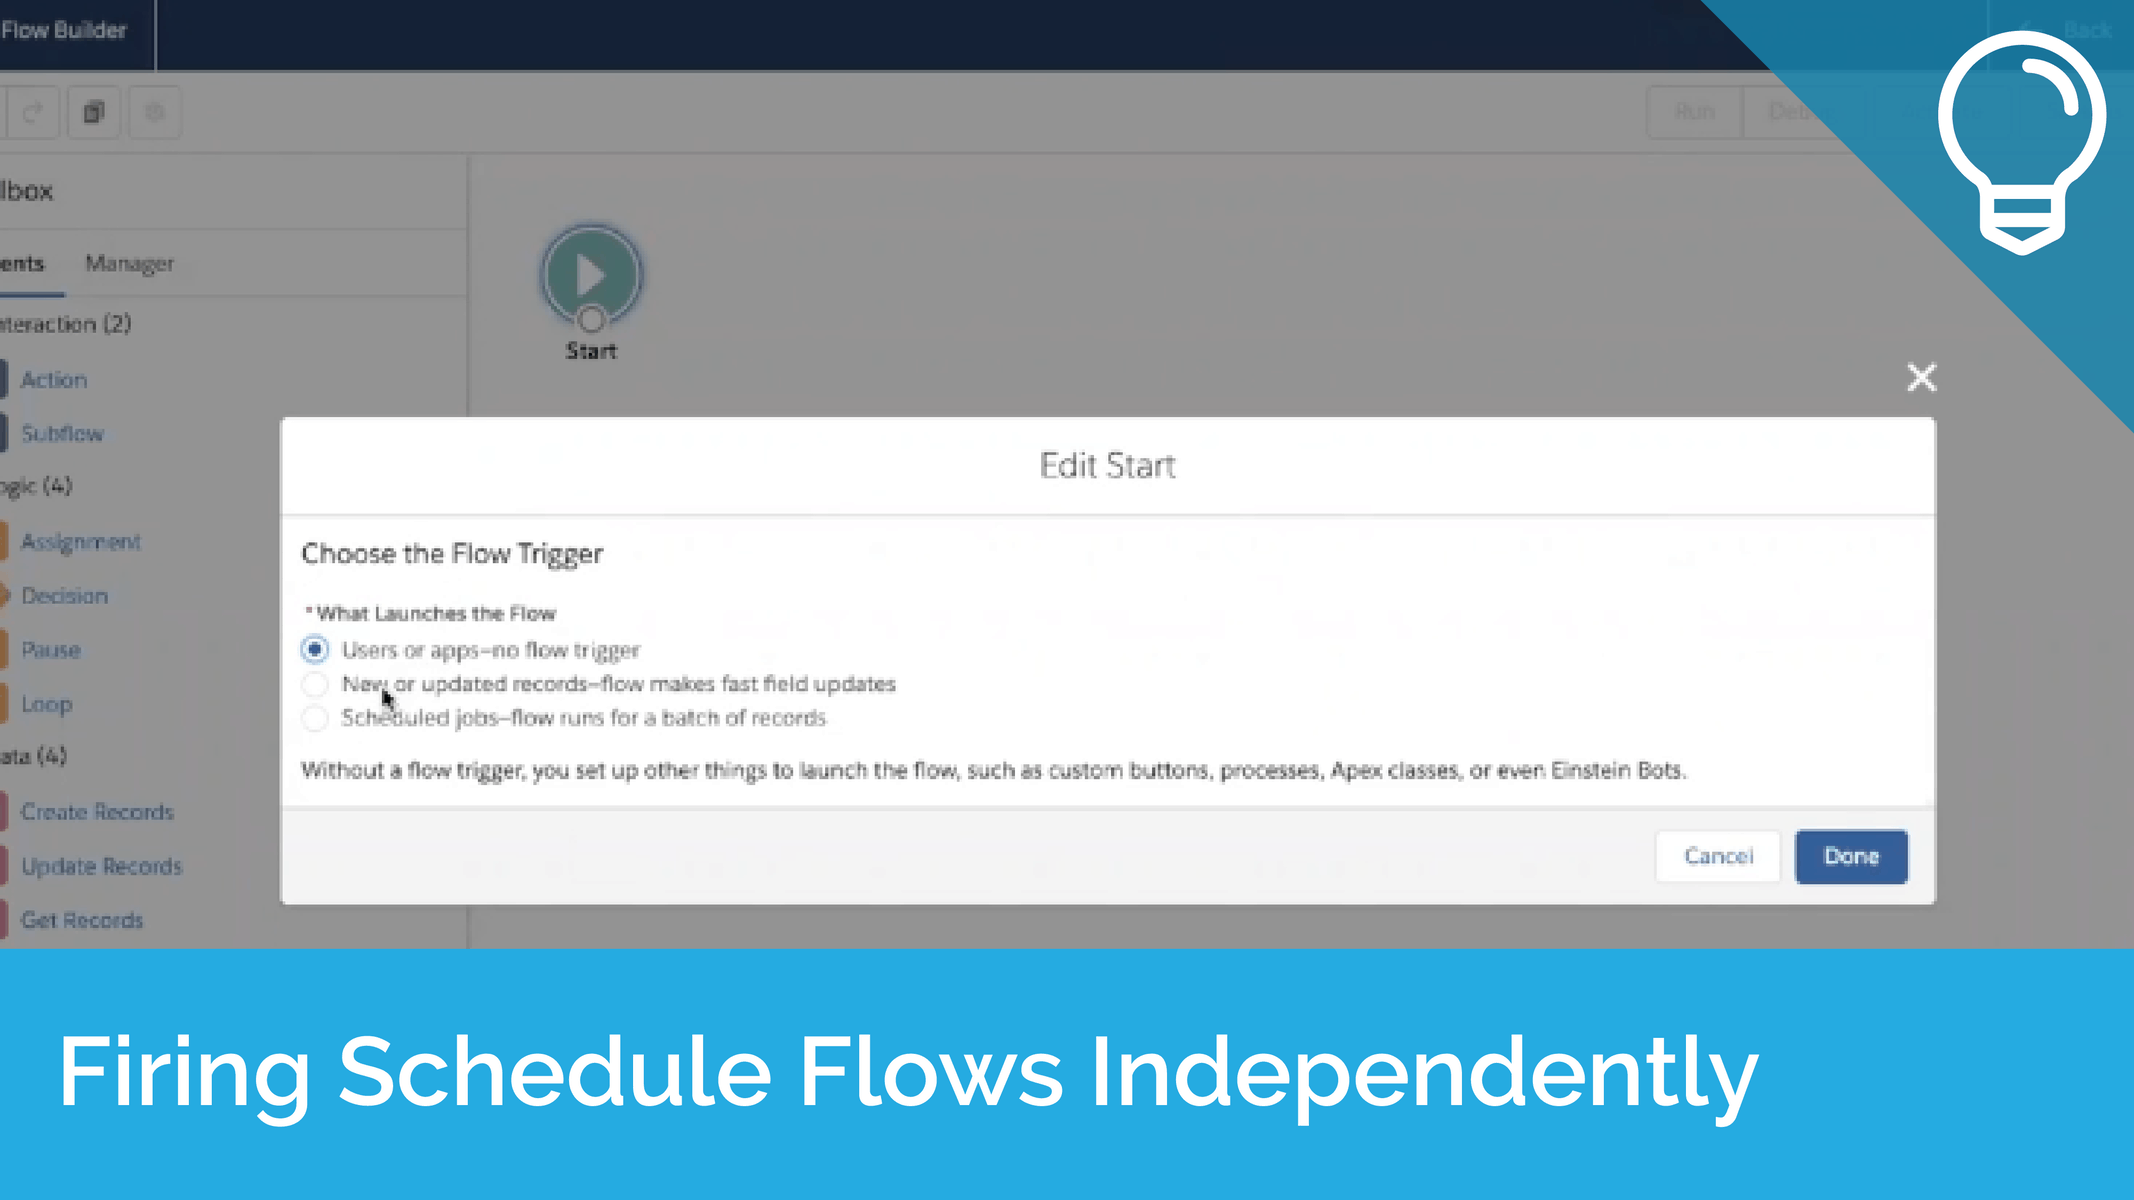 Firing Schedule Flows Independently Tip